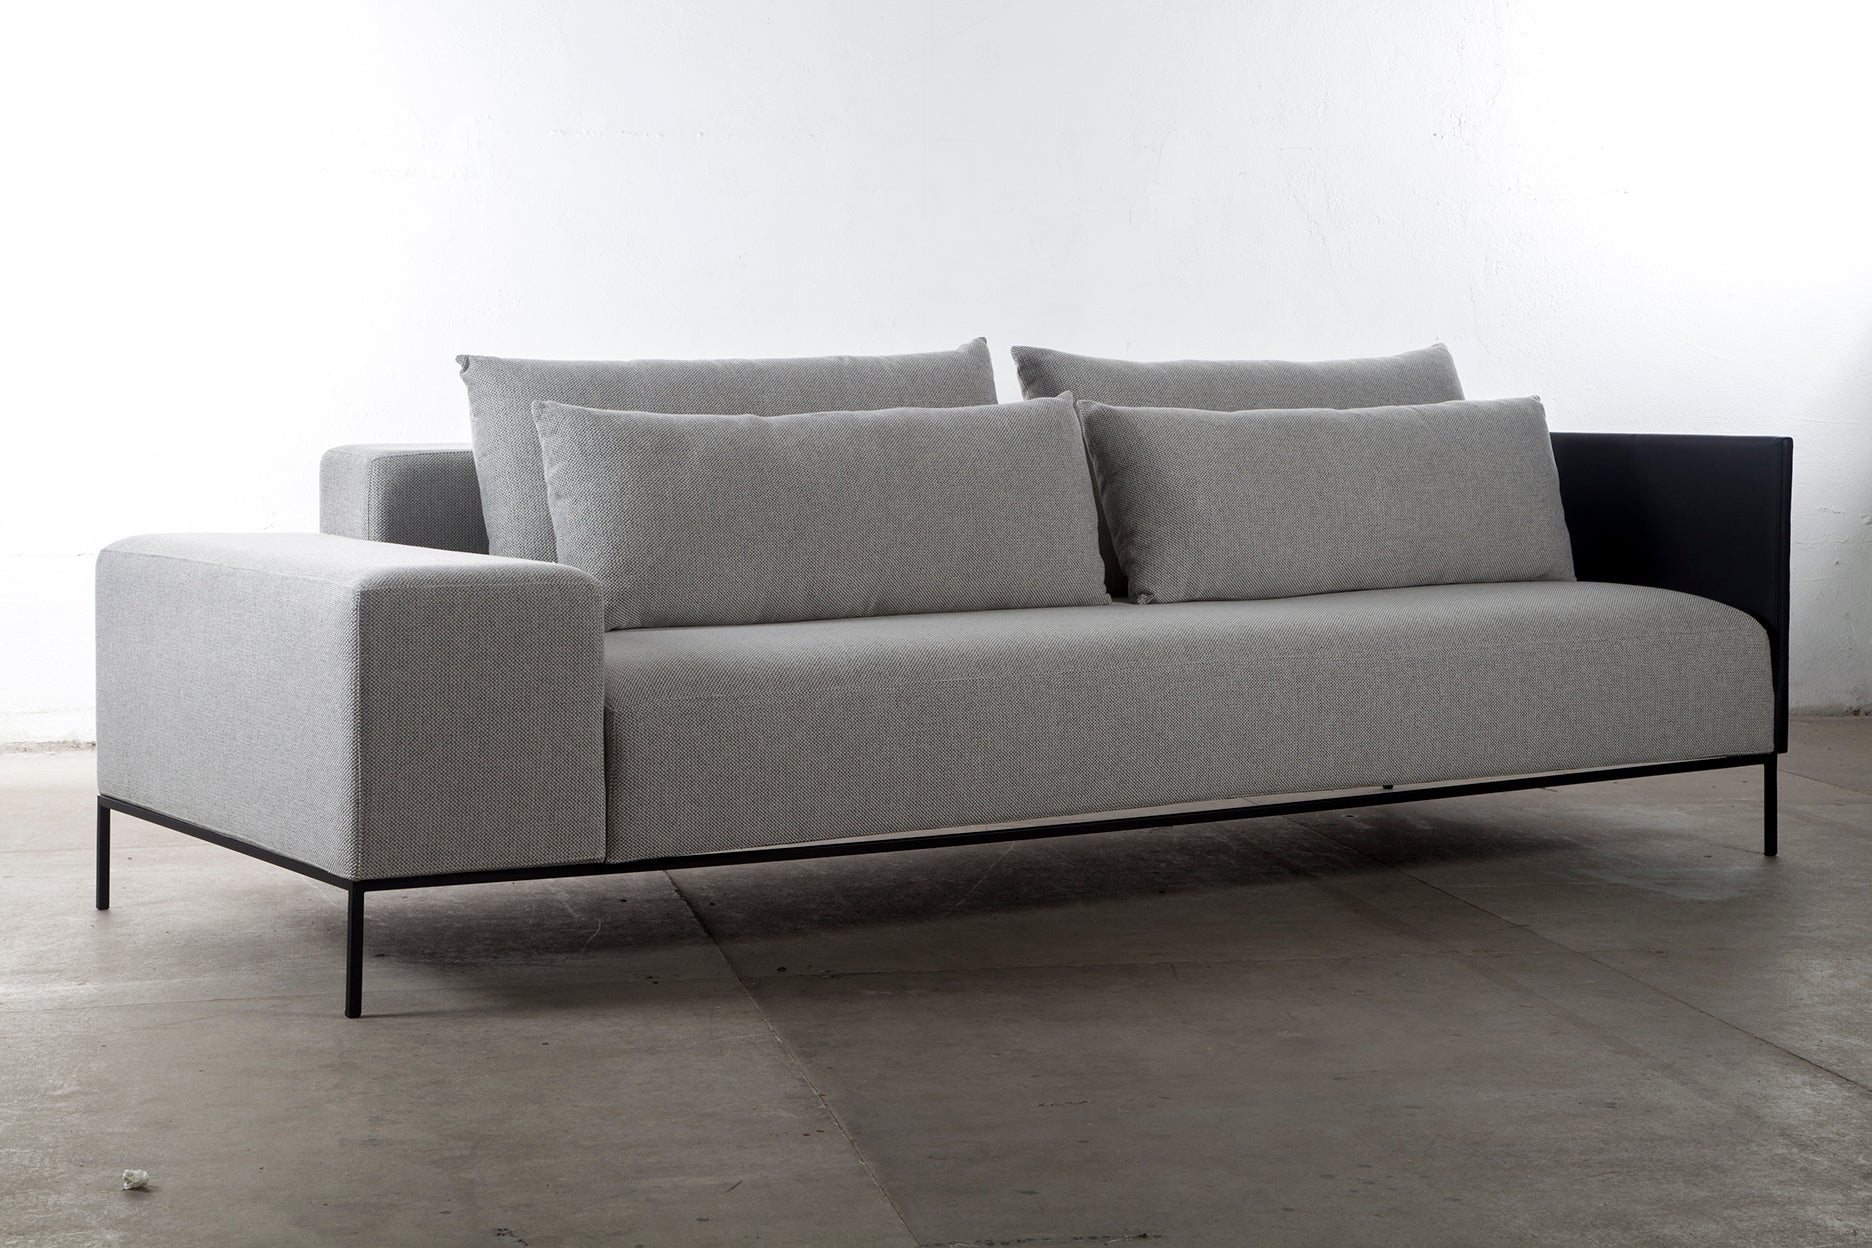 SOFA MAGIC 3 LUGARES